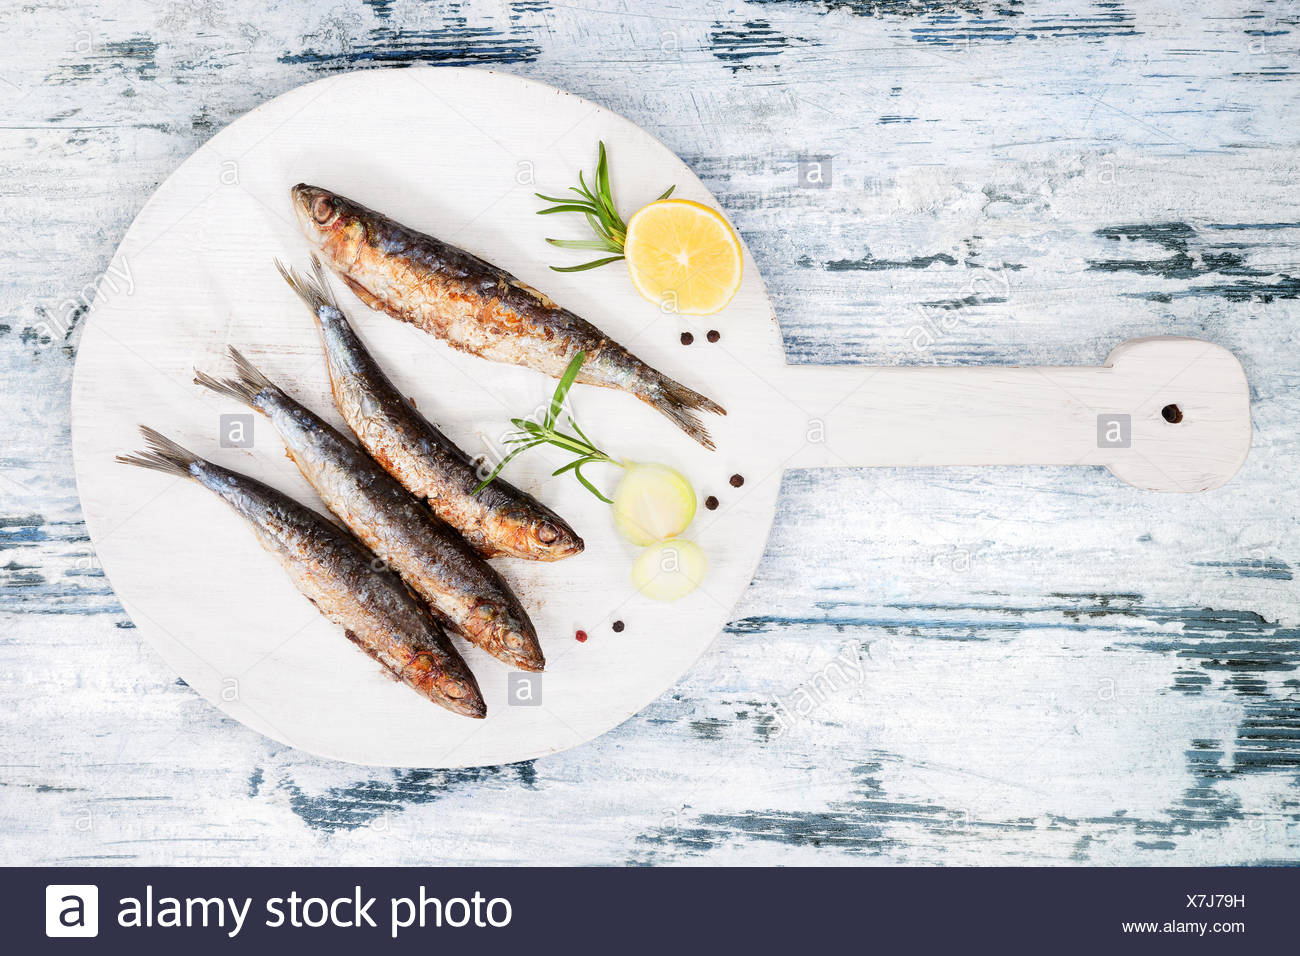 Several Fish Stock Photos & Several Fish Stock Images - Alamy